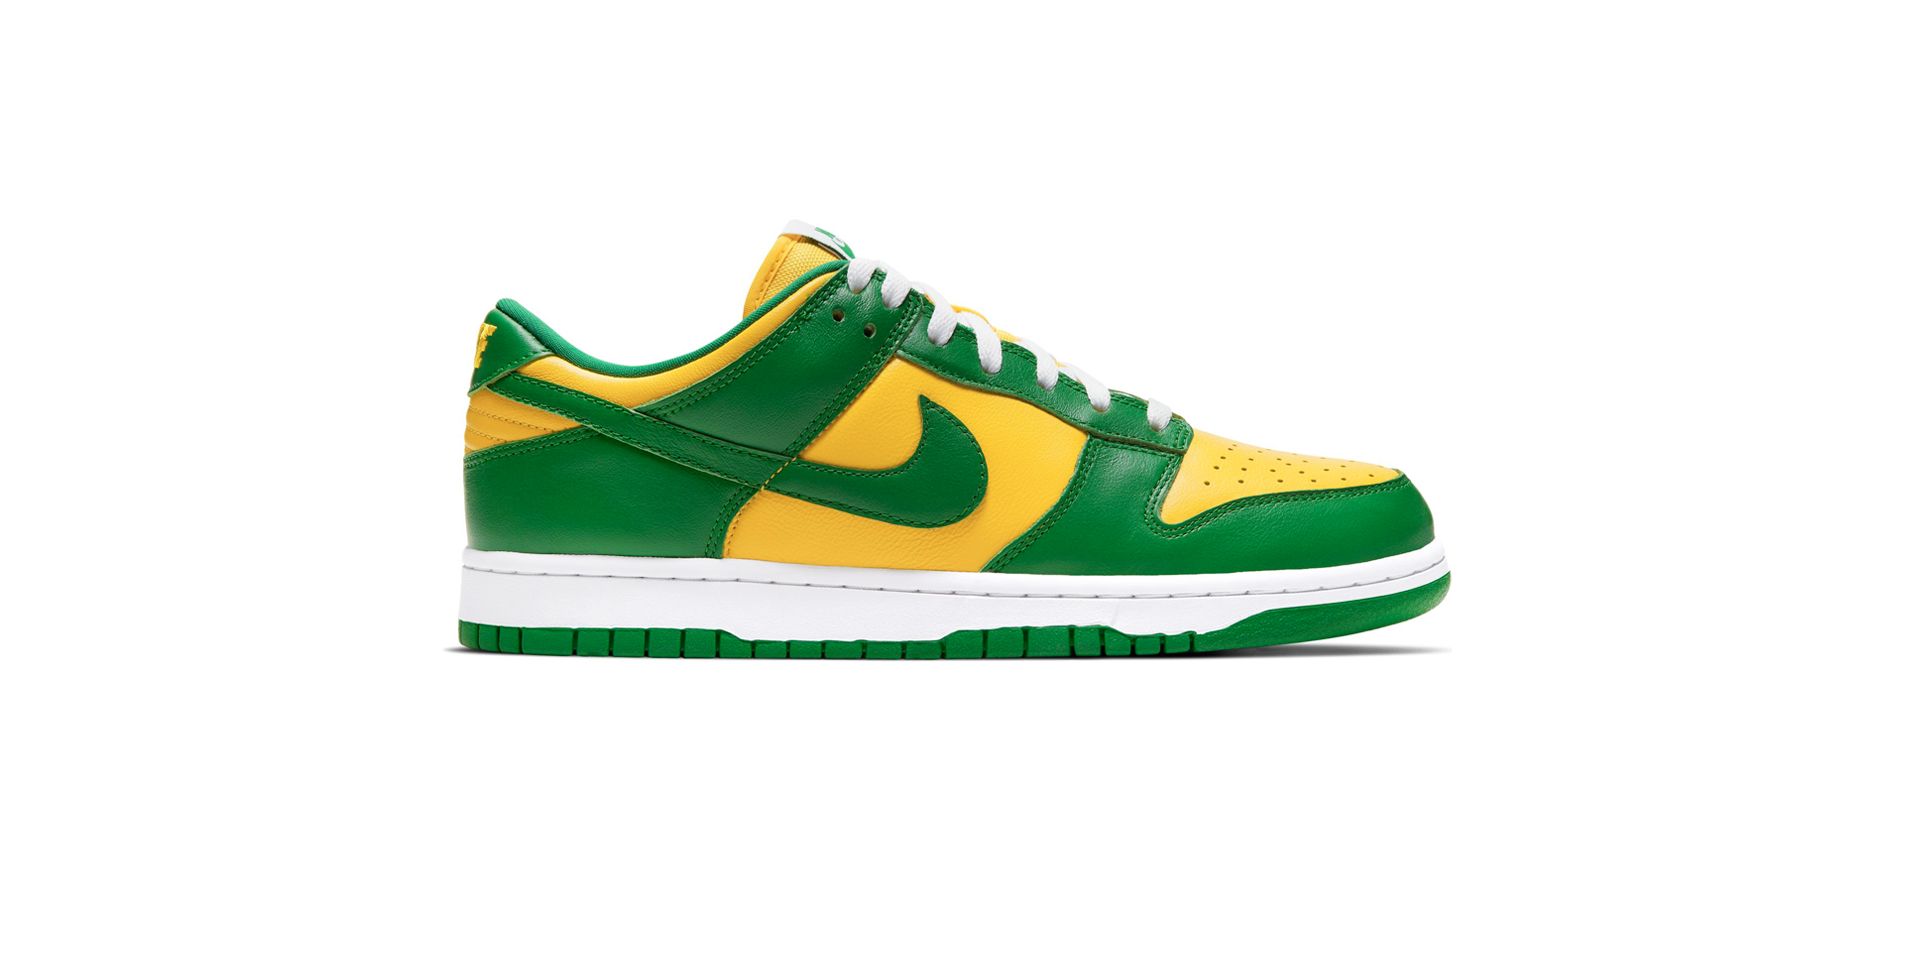 NIKE DUNK LOW SP - VARSITY MAIZE/PINE GREEN-WHITE